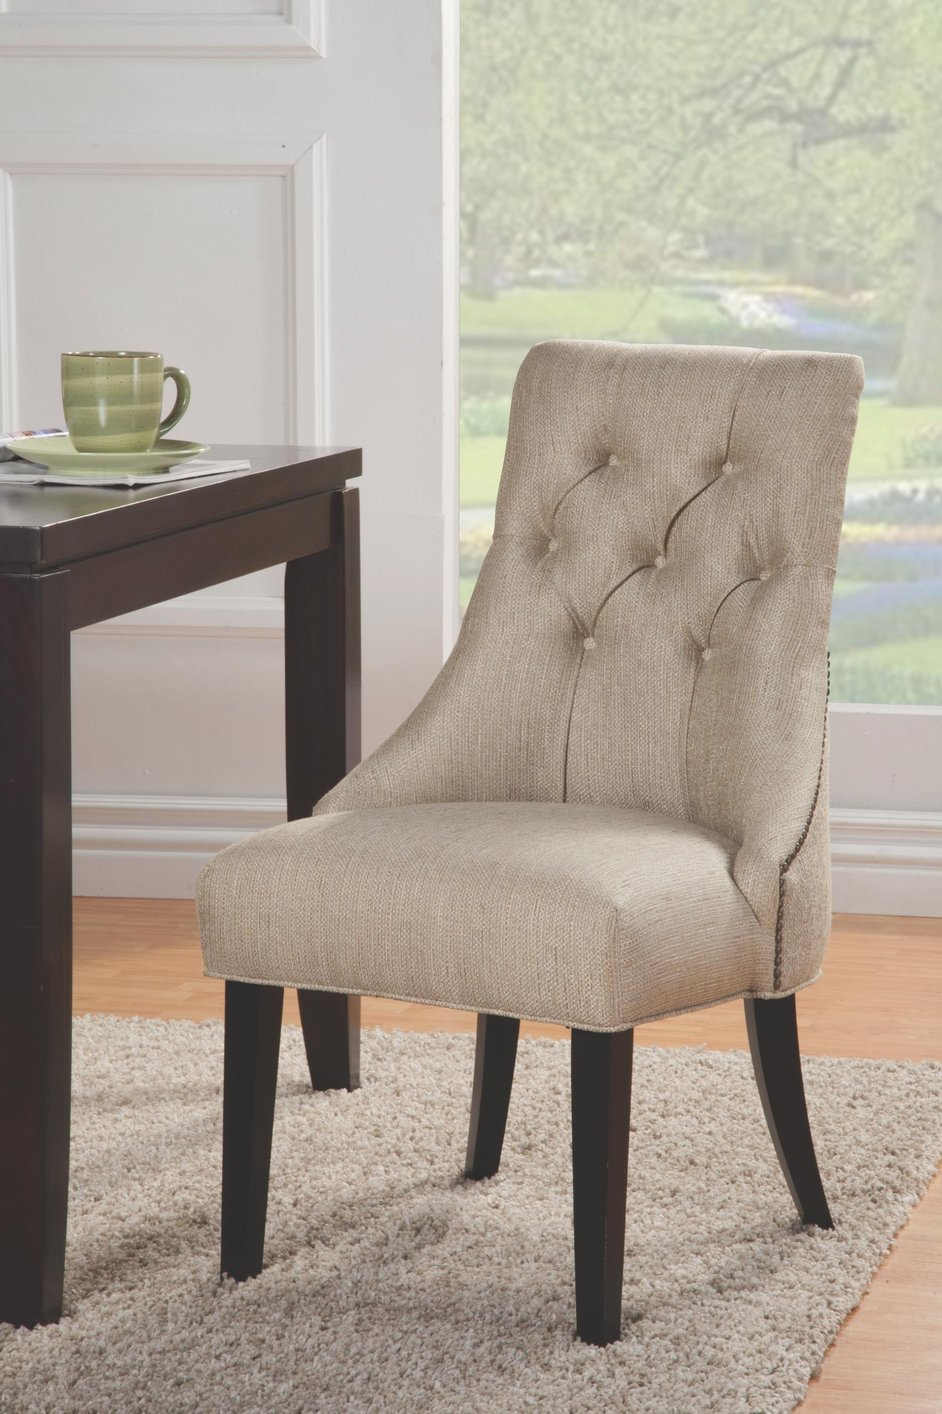 youth folding chair nursery rocking reviews coaster 104033 beige fabric accent - steal-a-sofa furniture outlet los angeles ca